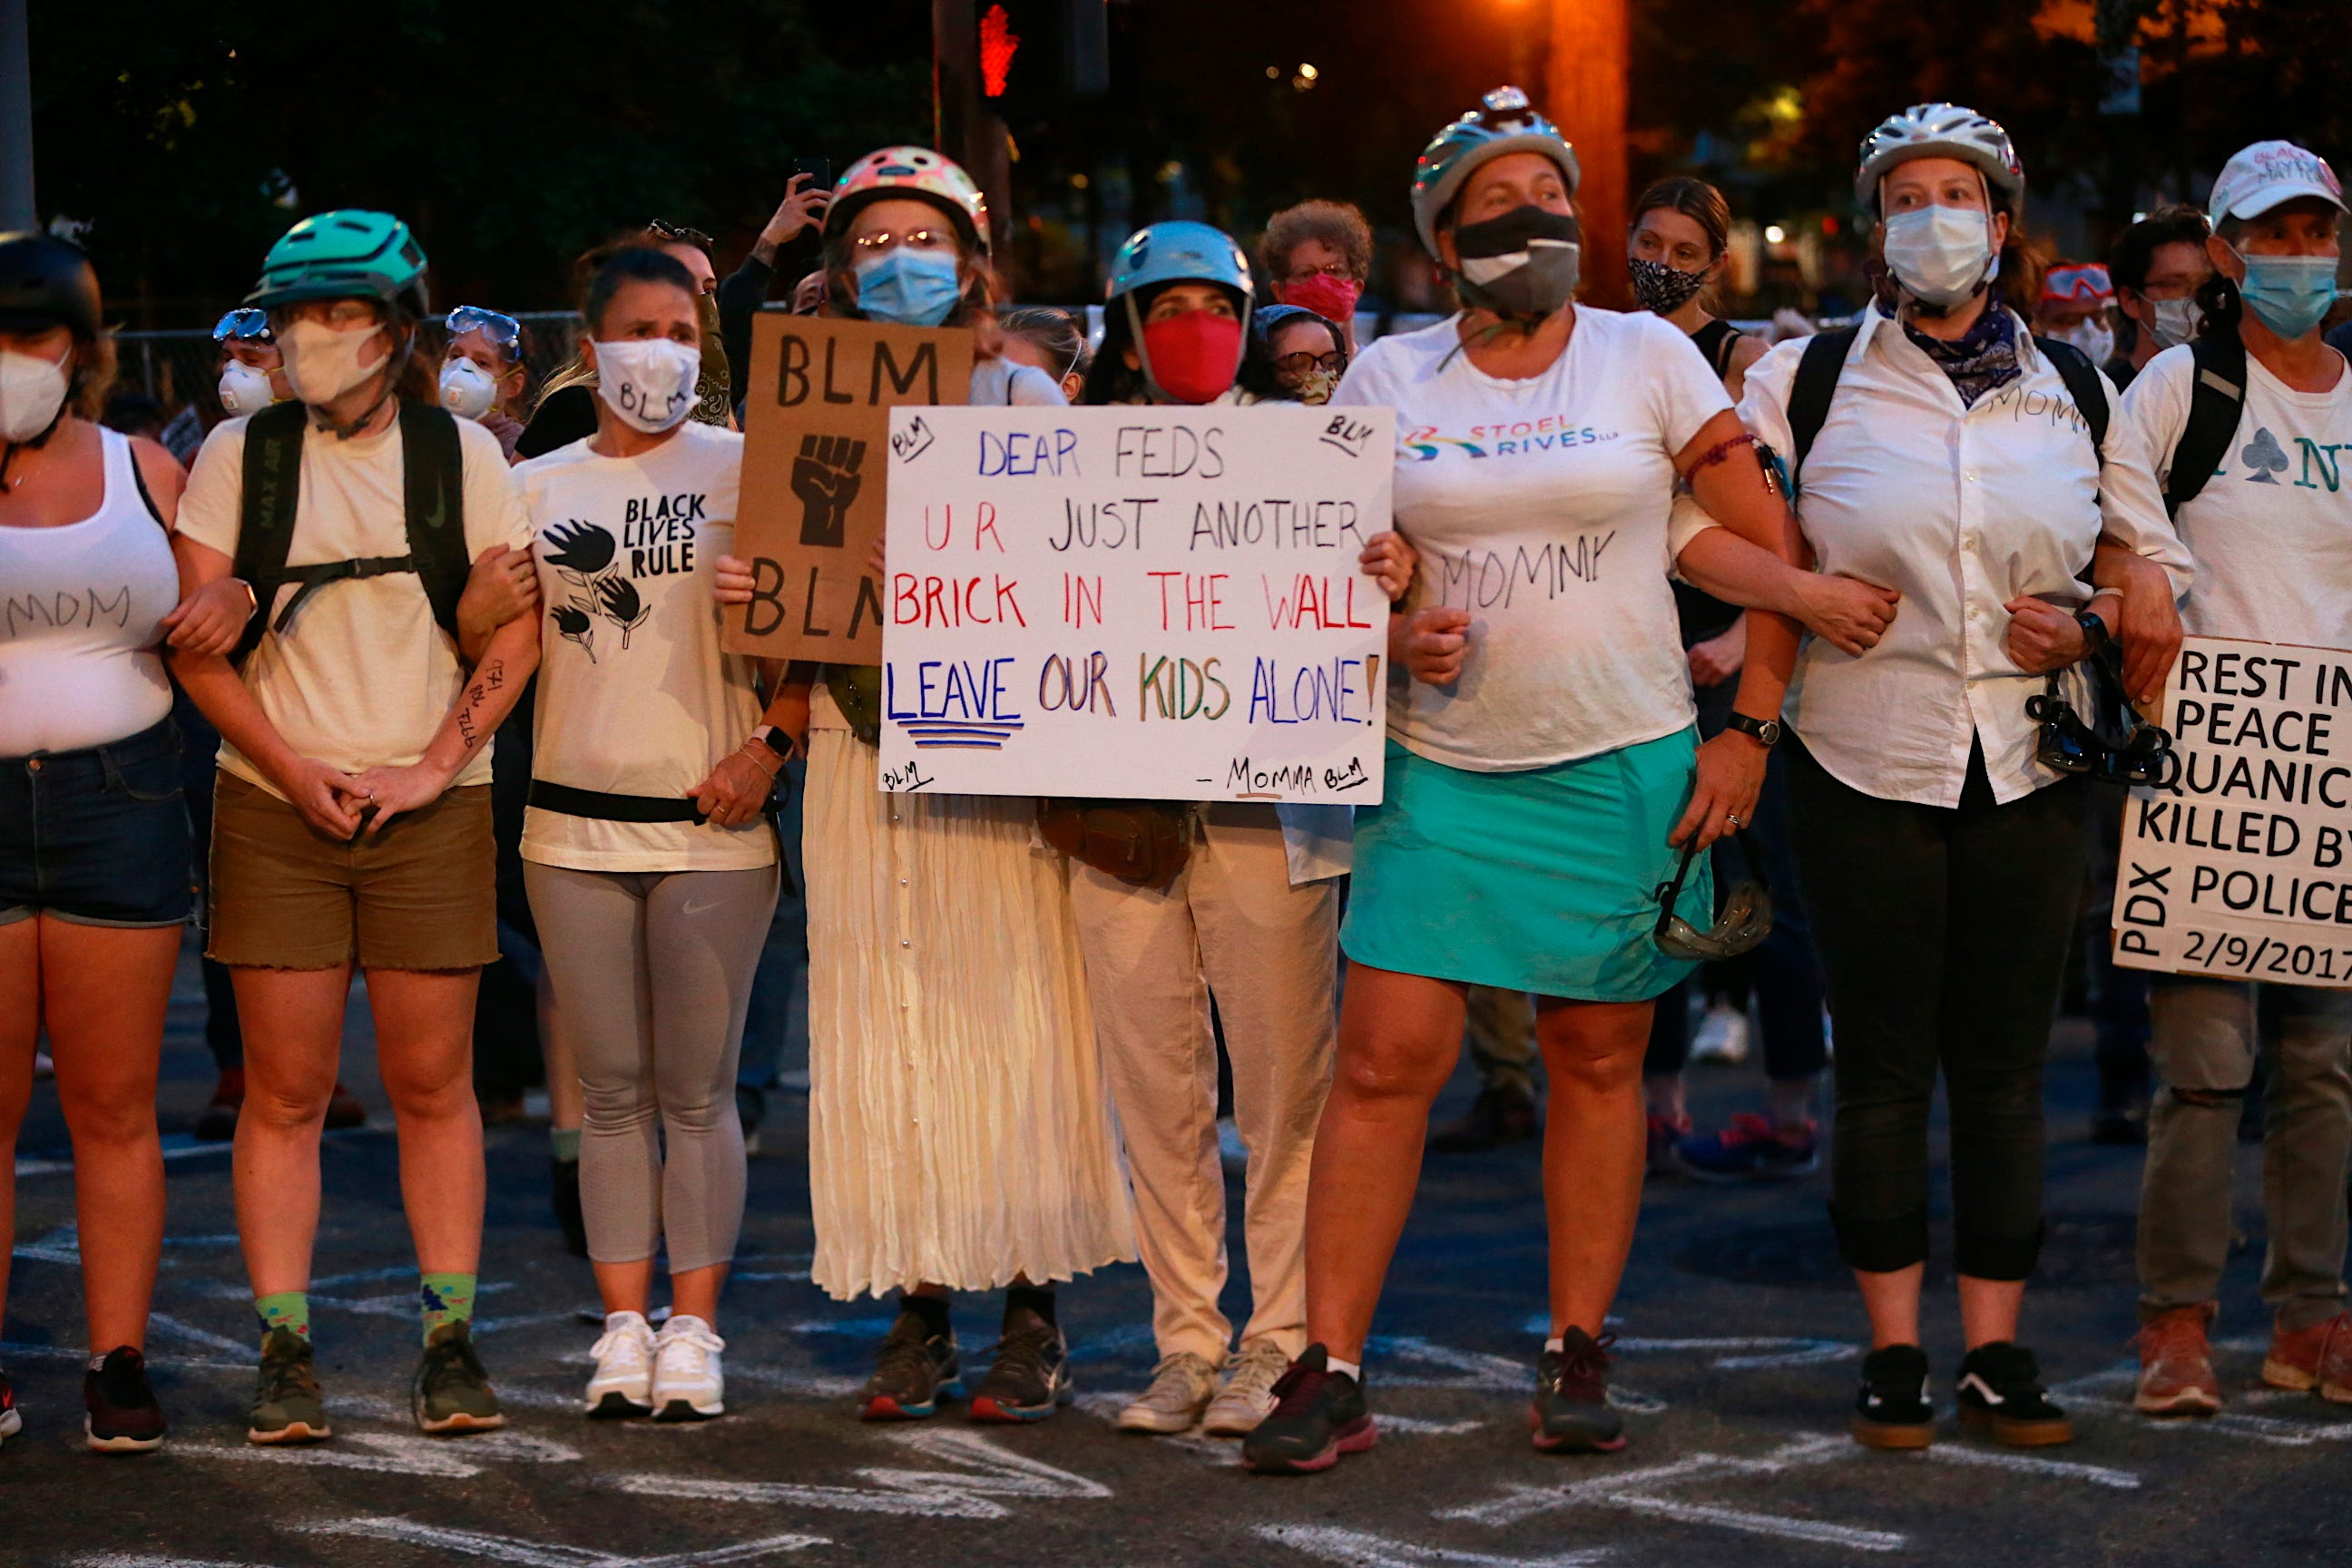 Mothers stand arm-in-arm outside the Justice Center in downtown Portland, Oregon, on July 18 during another night of protests. Activists and lawmakers expressed outrage over accusations that federal agents circulating in unmarked cars grabbed protesters off the streets.